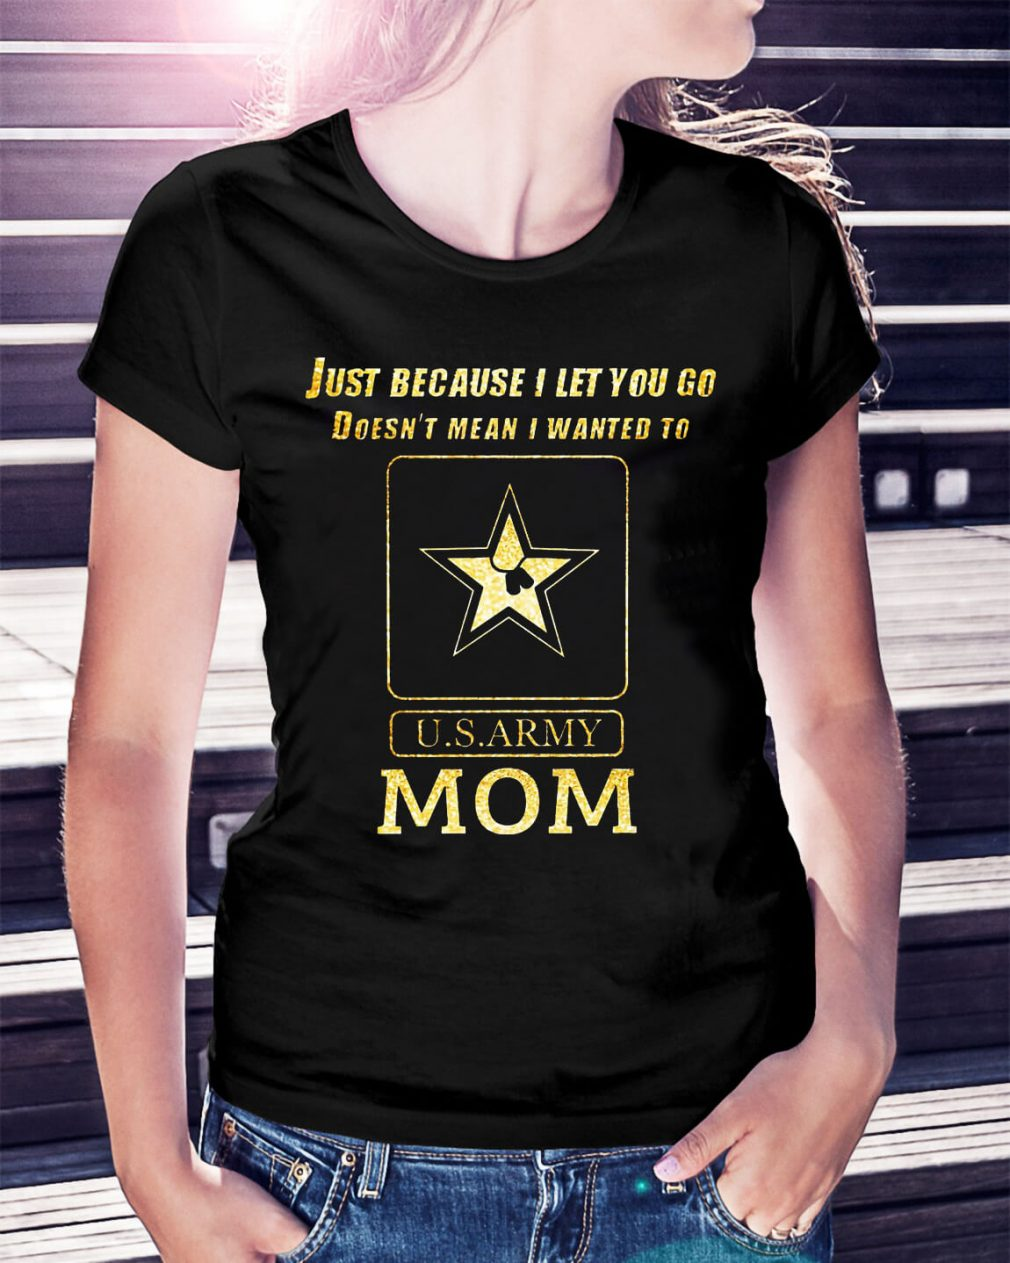 Just because I let you go doesn't mean I wanted to U.S ARMY mom shirt